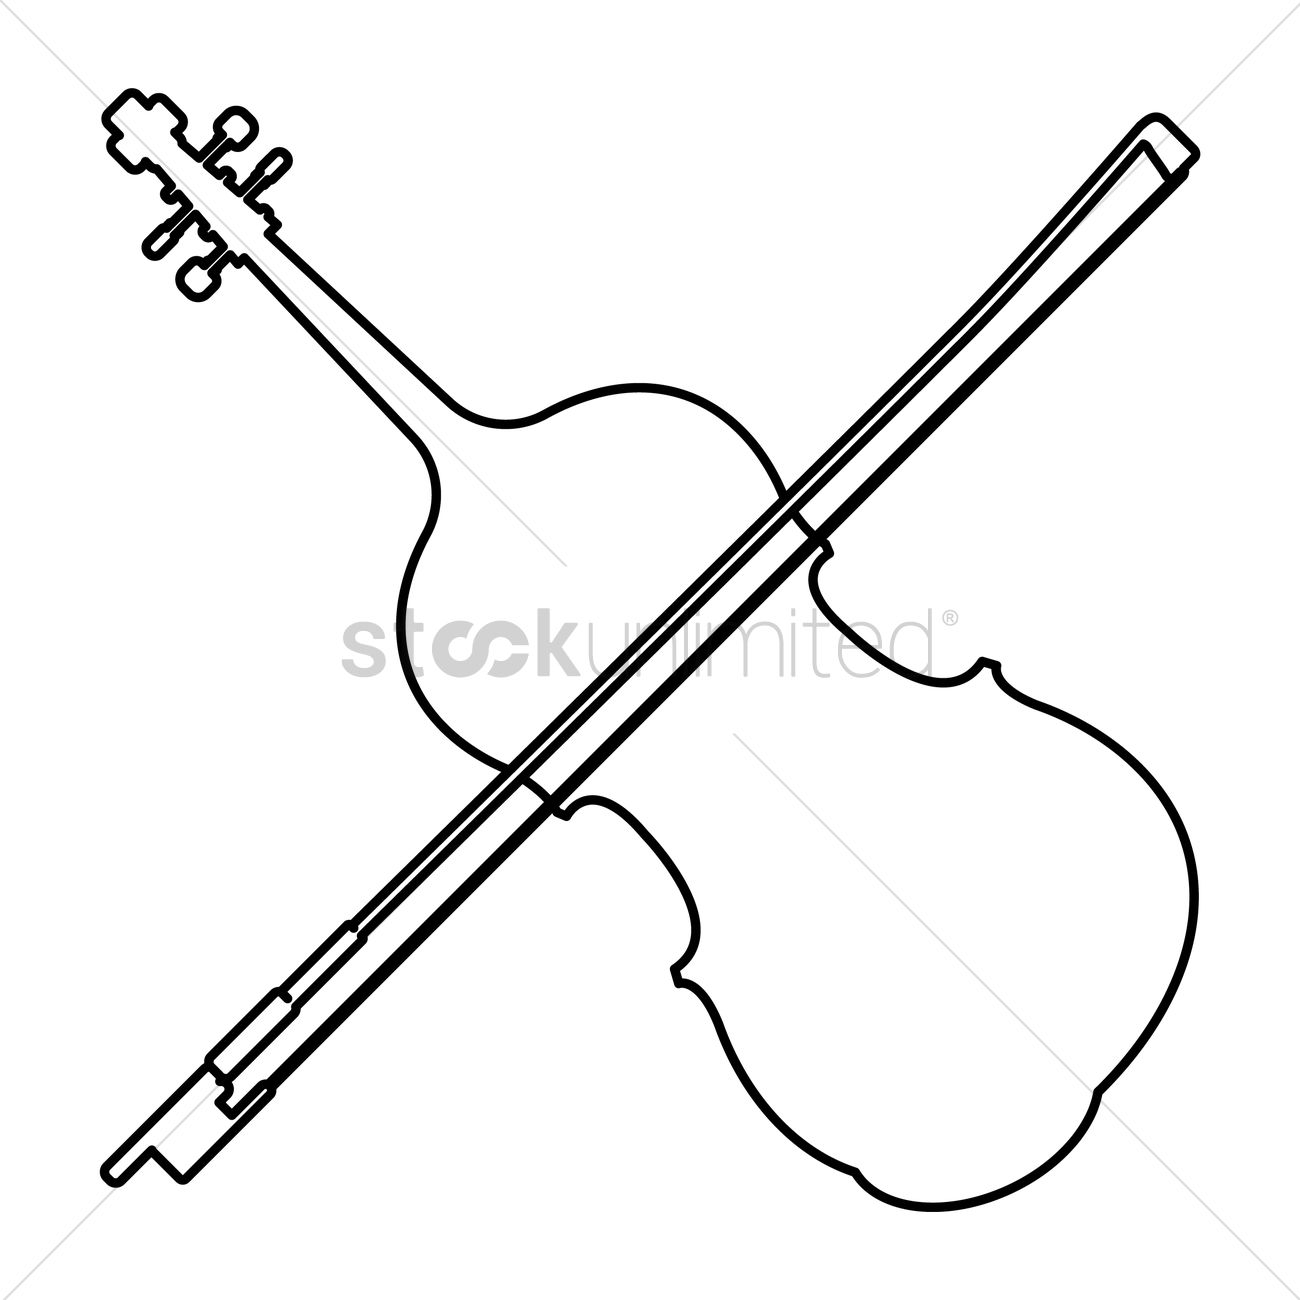 how do you draw a bow latest how do you draw a bow tie hd wallpaper draw a bow you do how